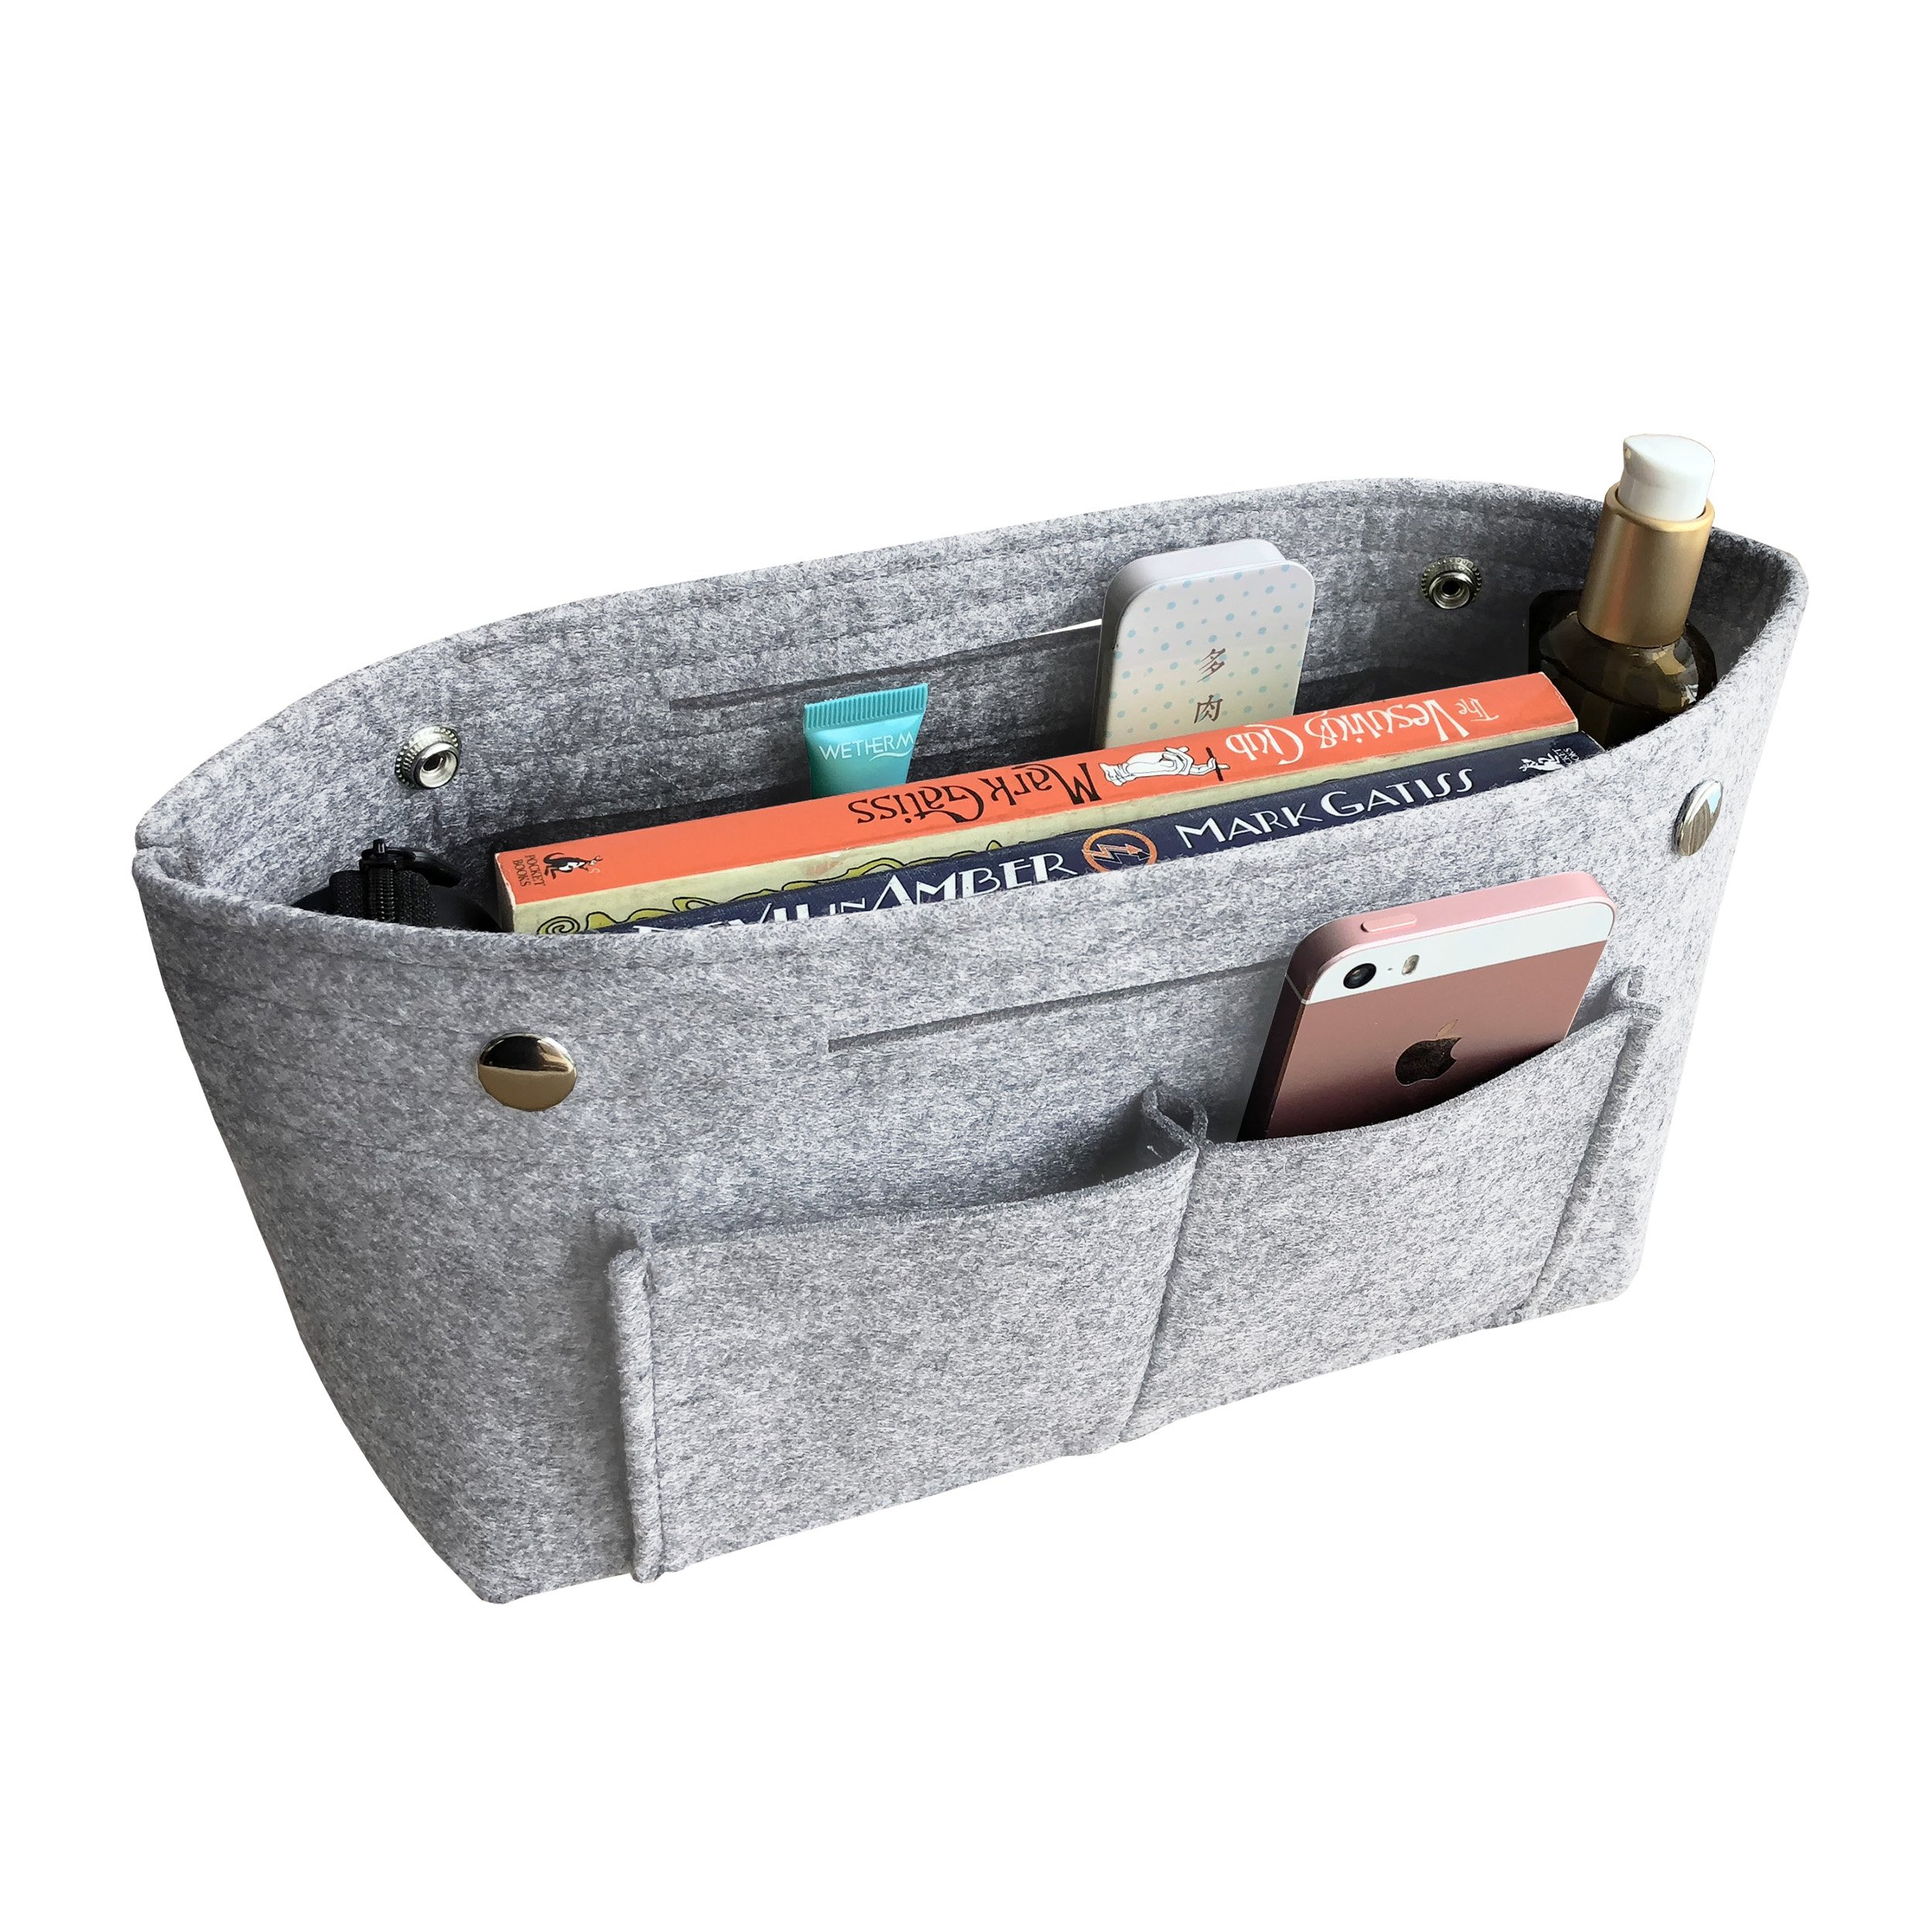 APSOONSELL Felt Tote Handbag Organizer Insert for Women, Light Grey - Large by APSOONSELL (Image #1)